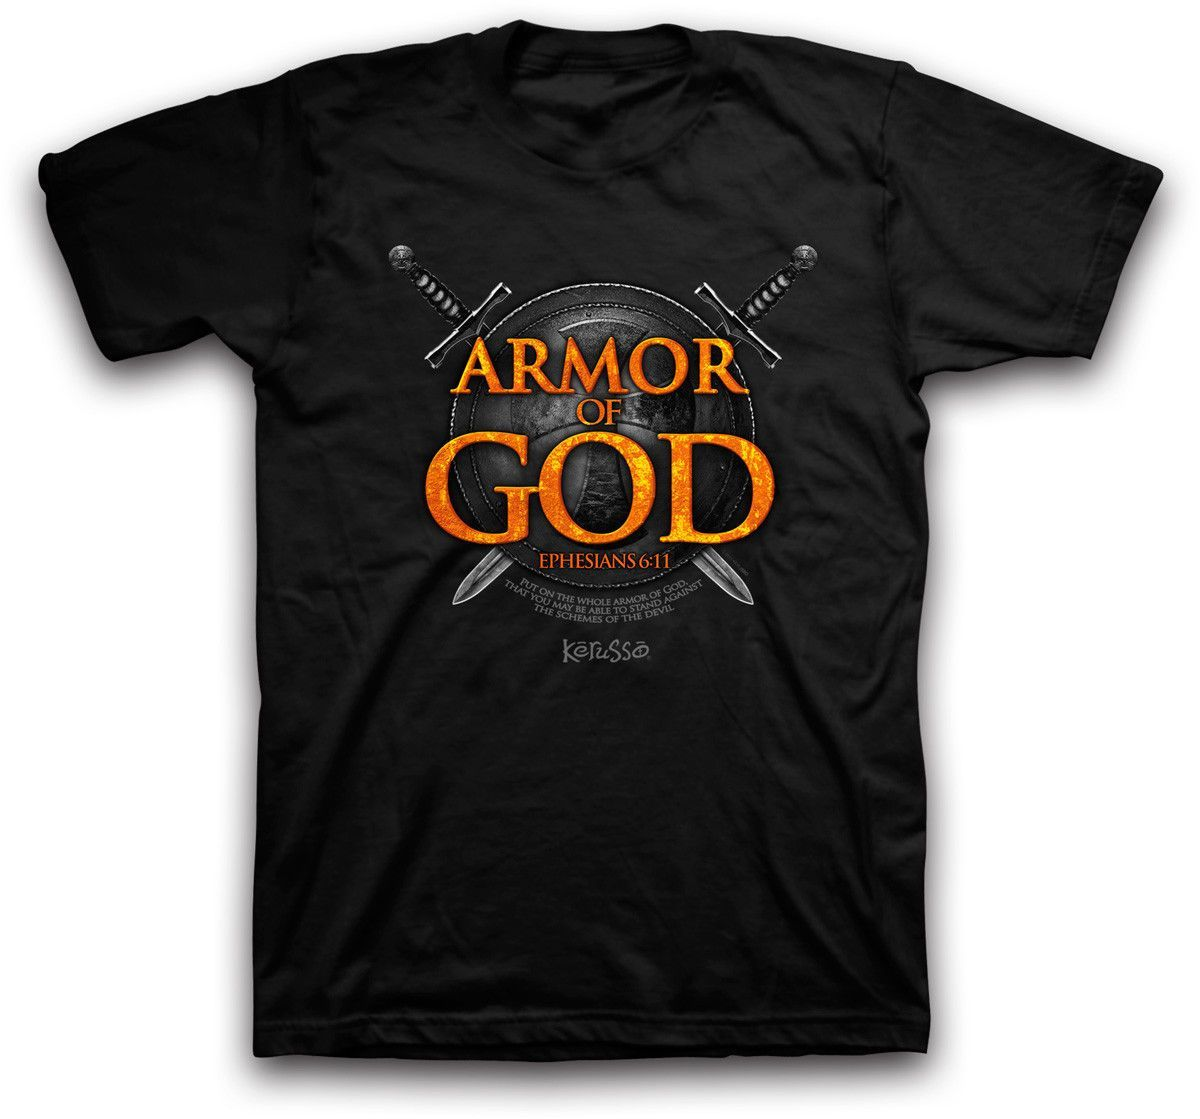 Hot new product now available on our store  Armor of God NEW Christian Kerusso Black Short Sleeve Tshirt Check it out here! [product-url